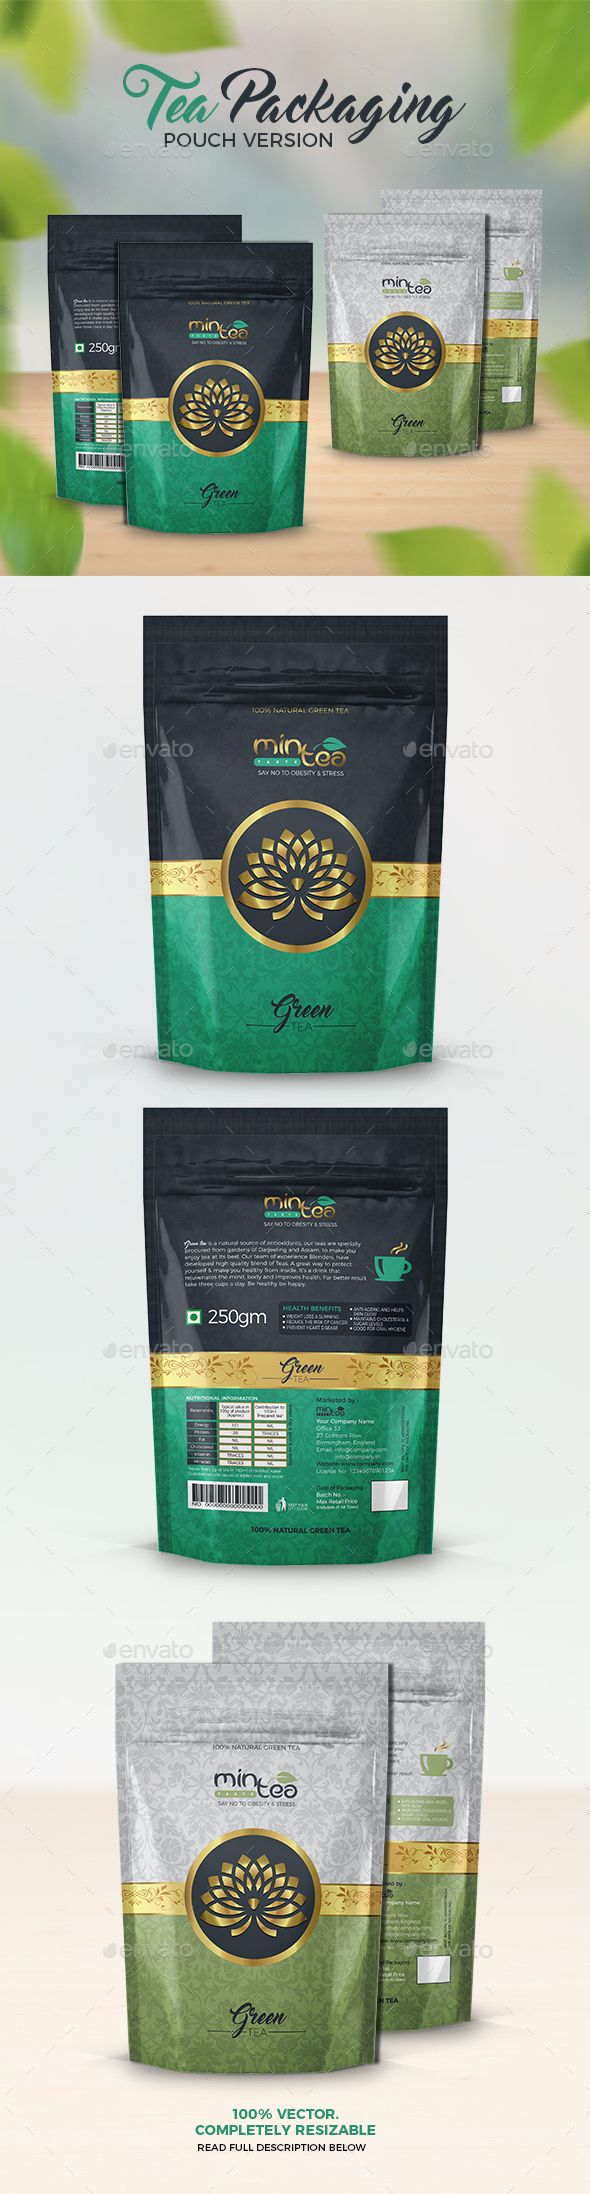 Tea Packaging (Pouch Version) - Packaging Print Templates #teapackaging